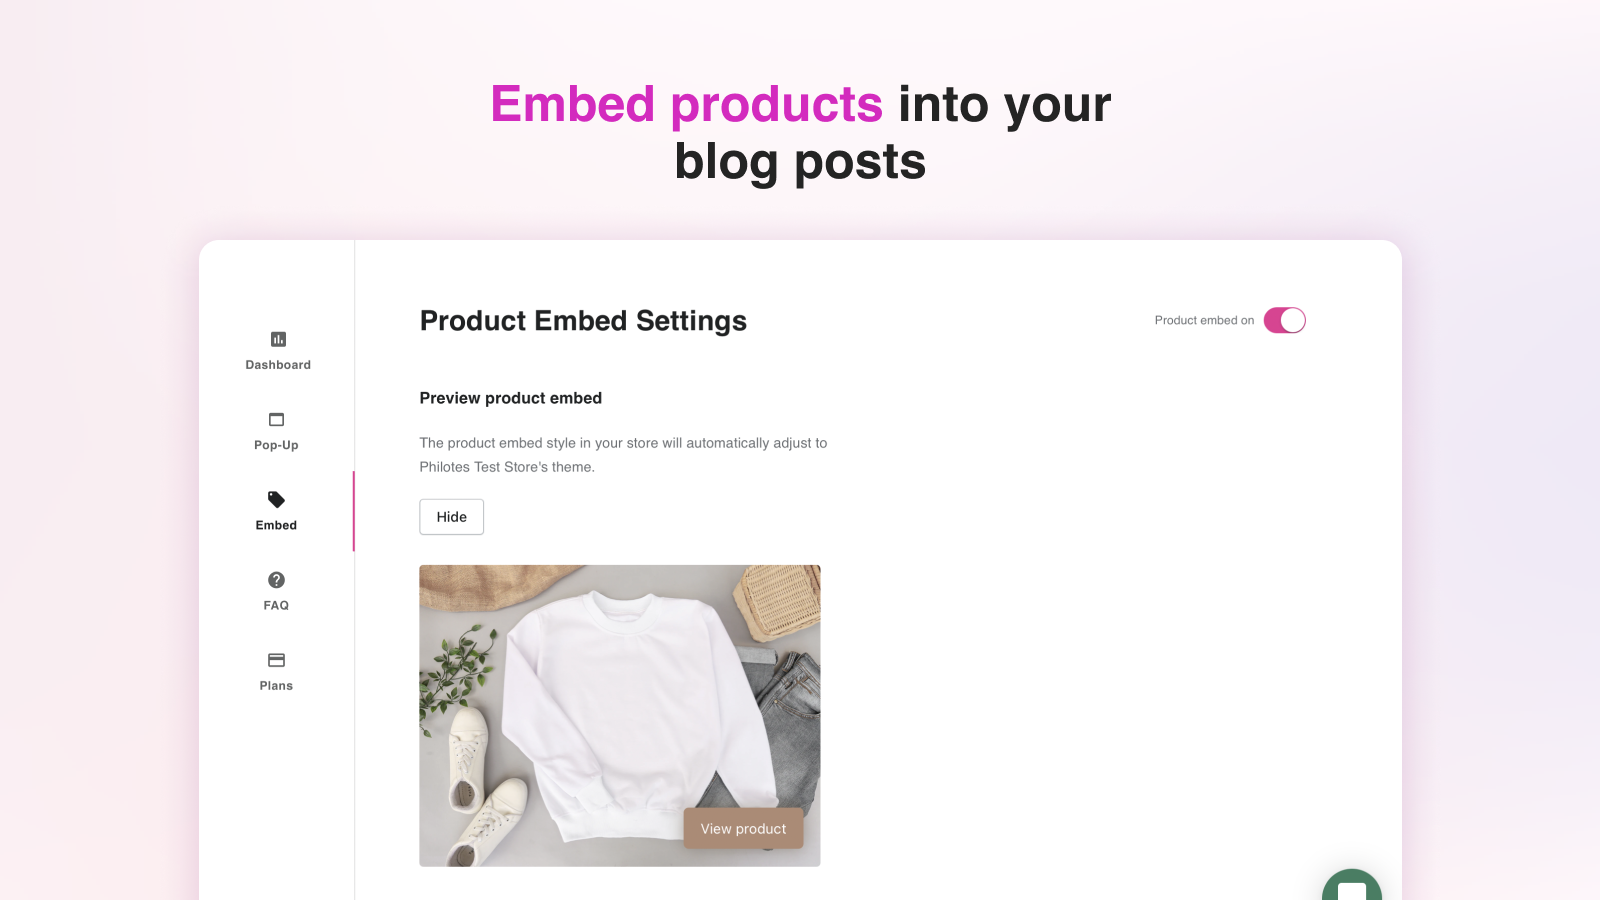 Embed products